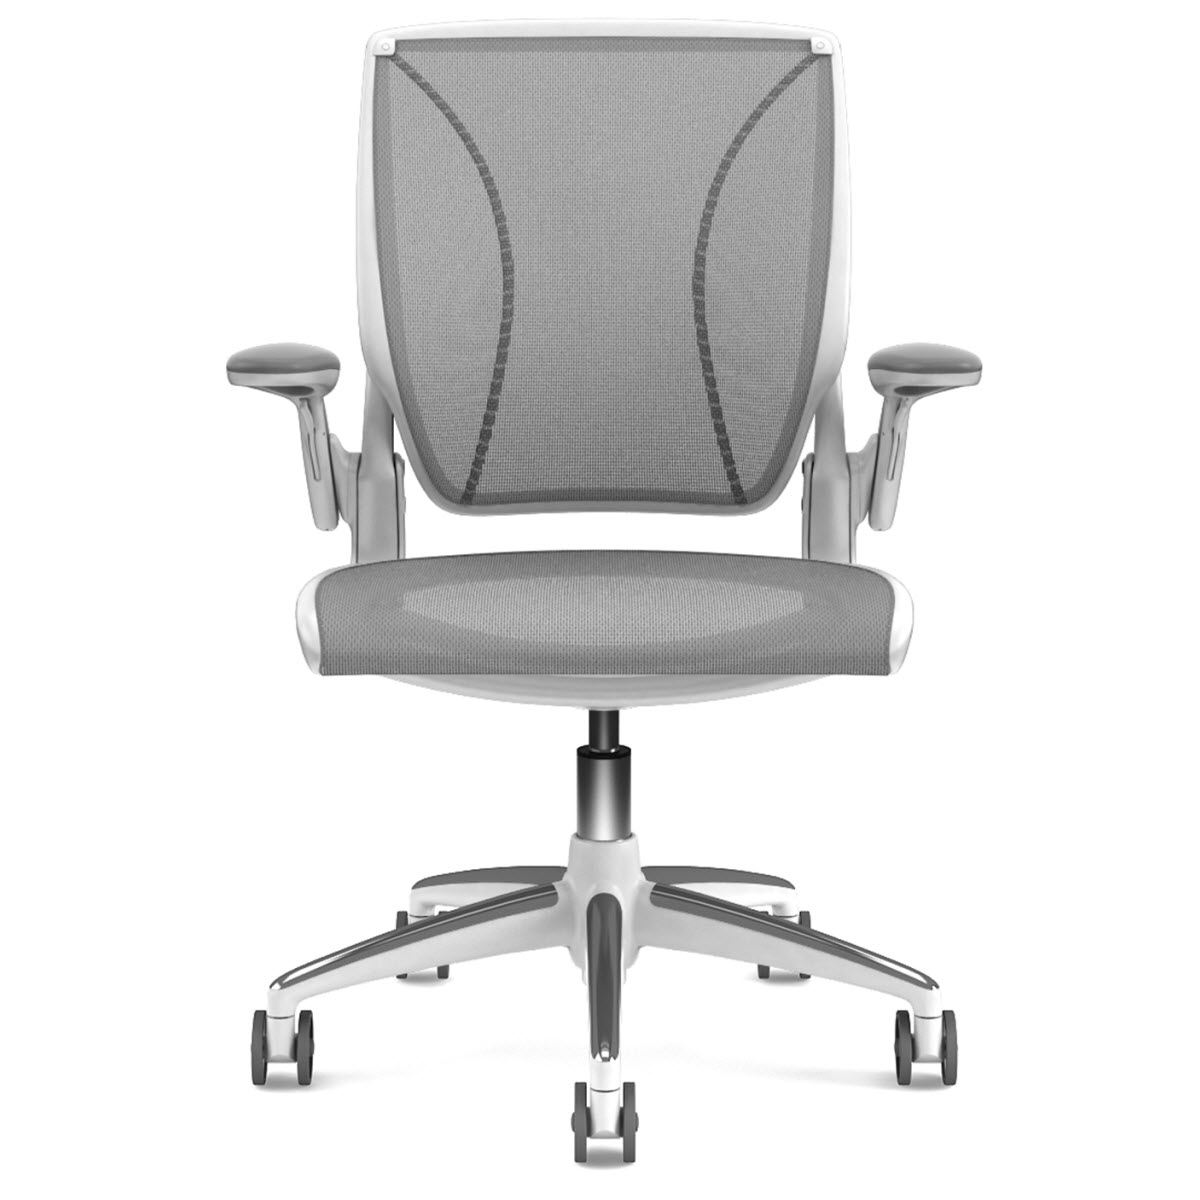 Humanscale Diffrient World Chair Shop Humanscale Diffrient World Chairs Same Day Ship